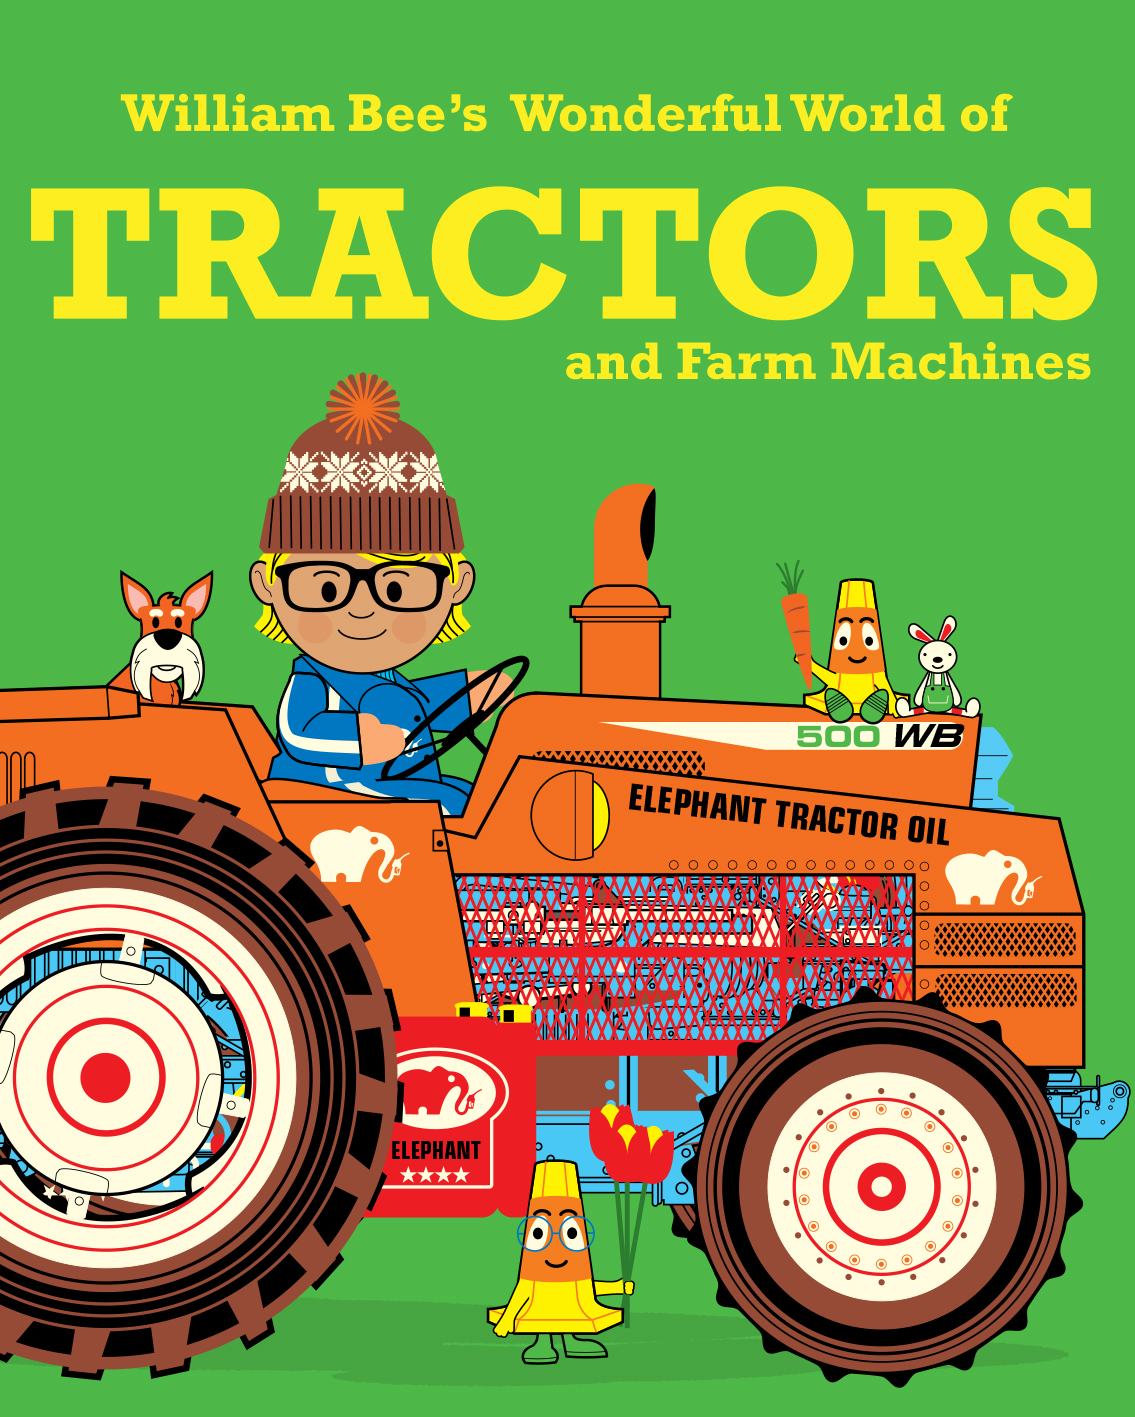 William Bee's Wonderful World of Tractors and Farm Machines